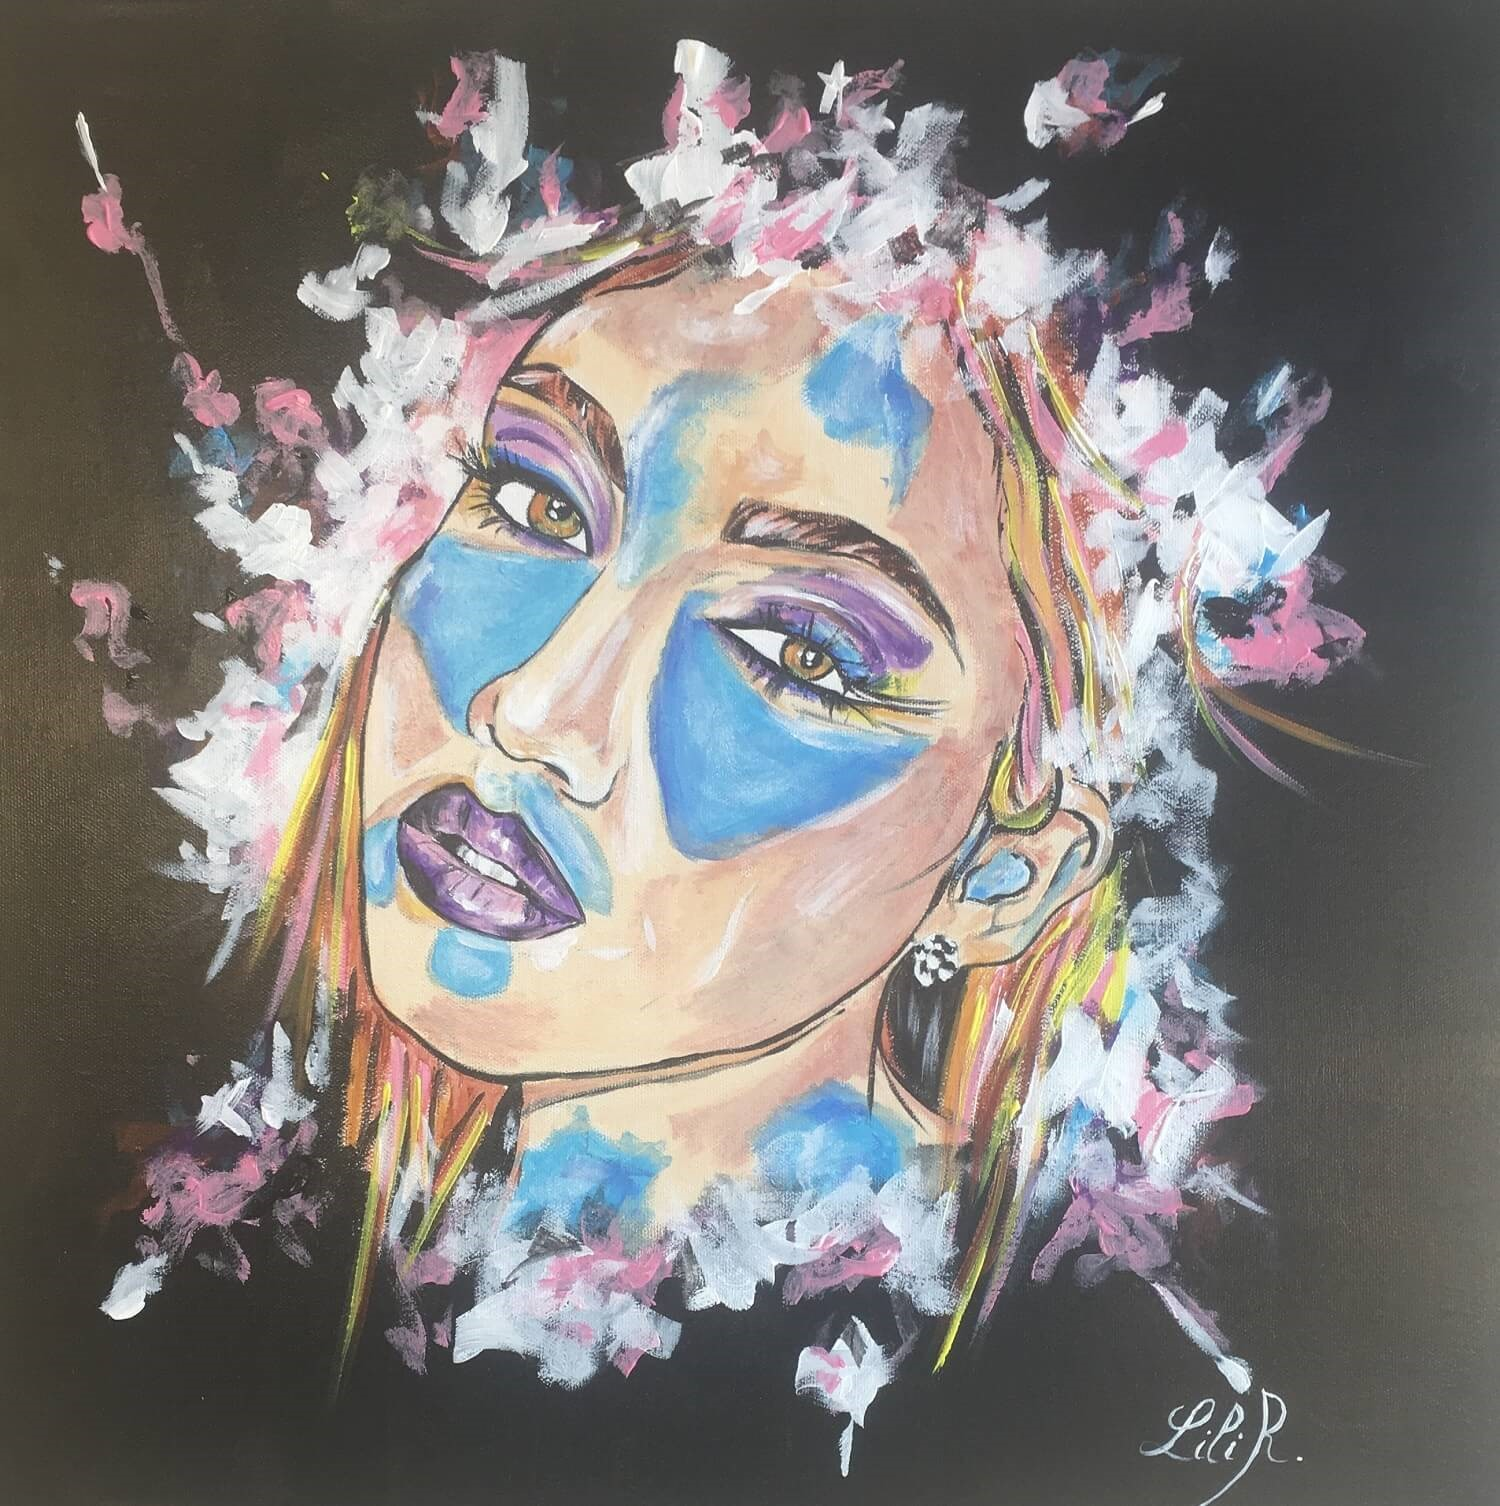 tableau-pop-art-visage-femme-severine-richer-peintre-normand